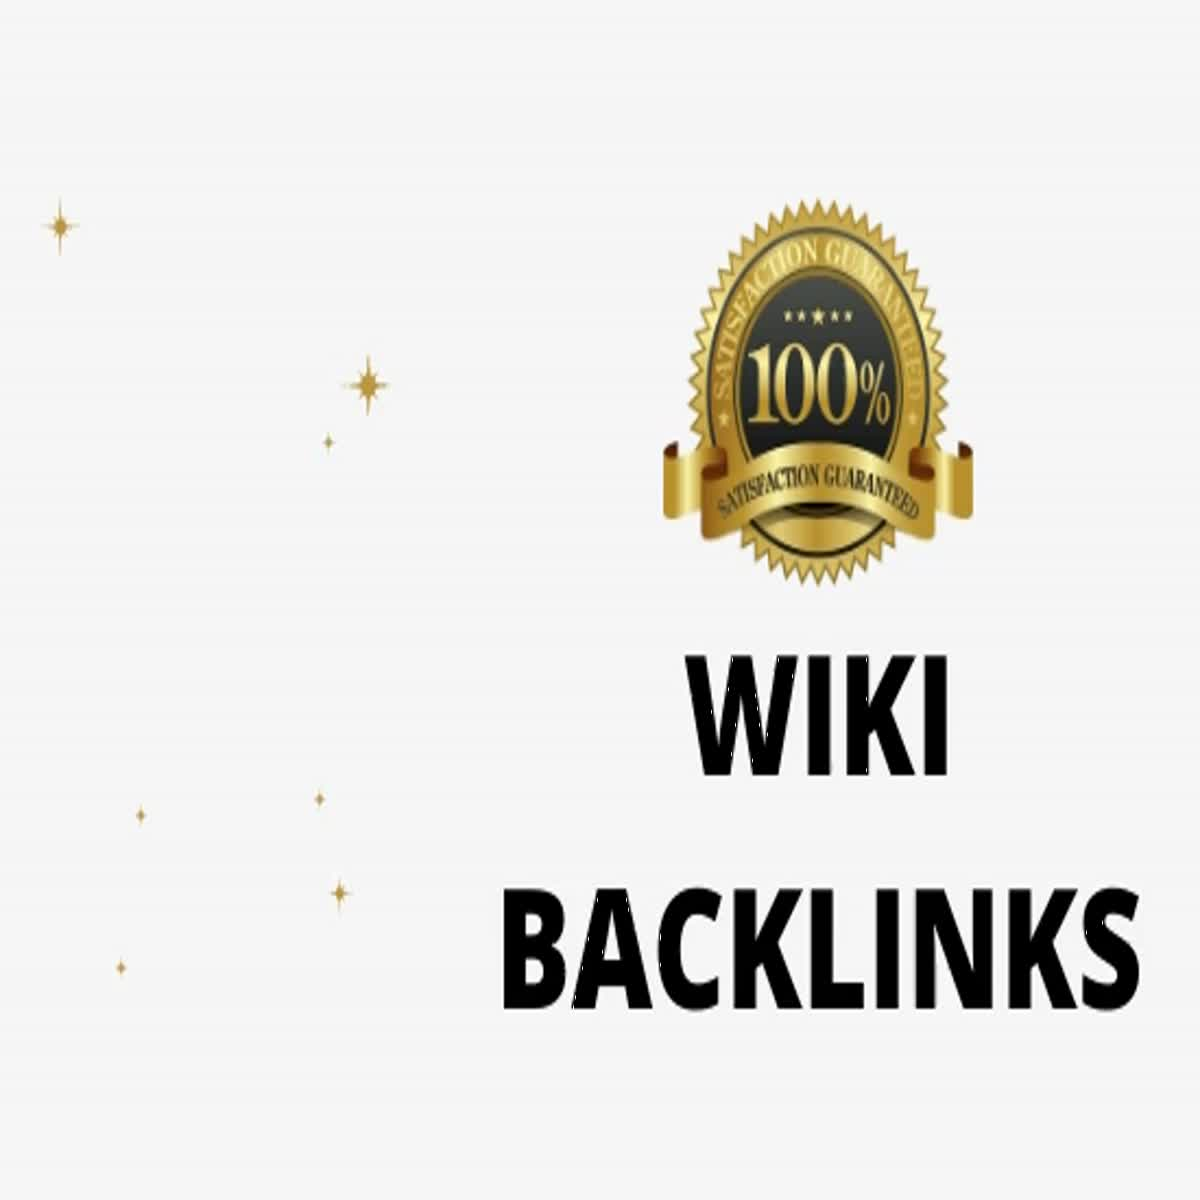 I can provide you with 1500 wiki backlinks mixed profiles and articles